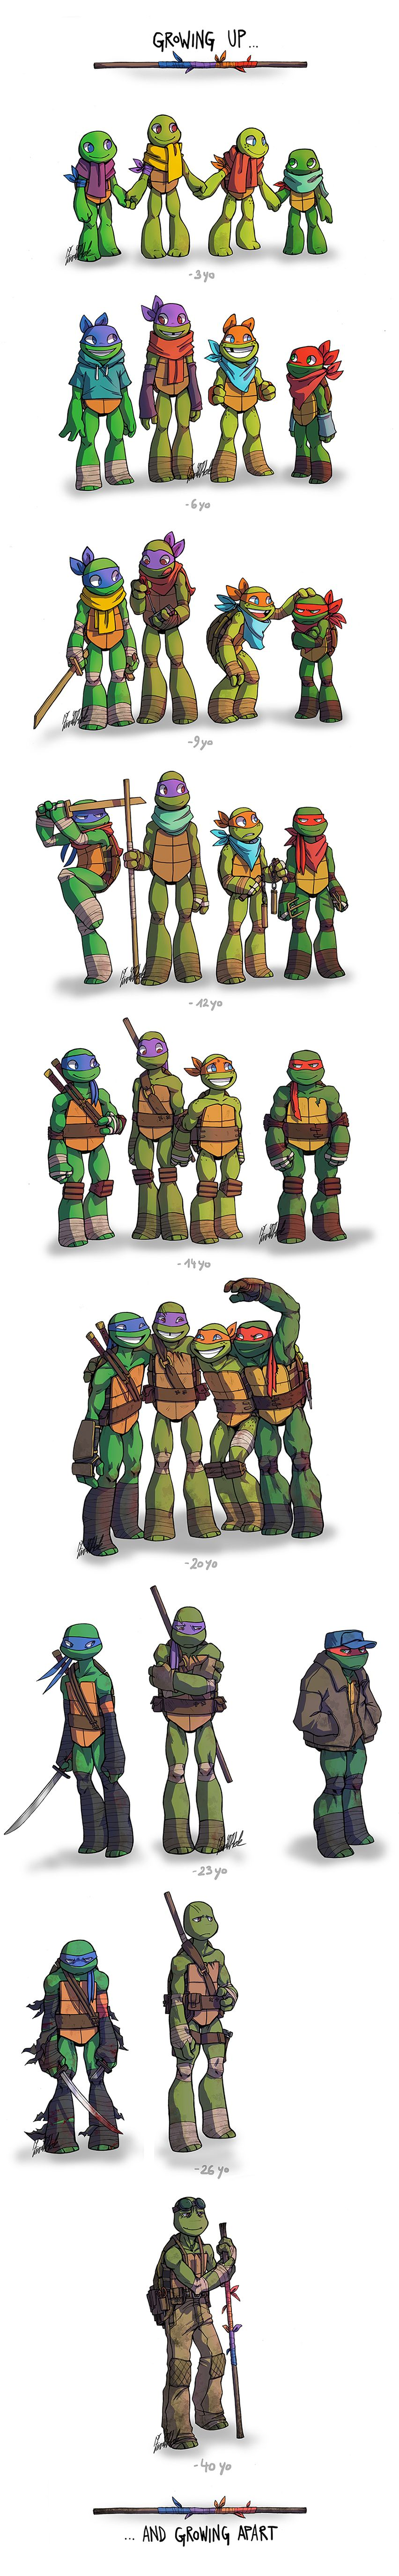 Growing Up Teenage Mutant Ninja Turtles Art Teenage Ninja Turtles Ninja Turtles Art